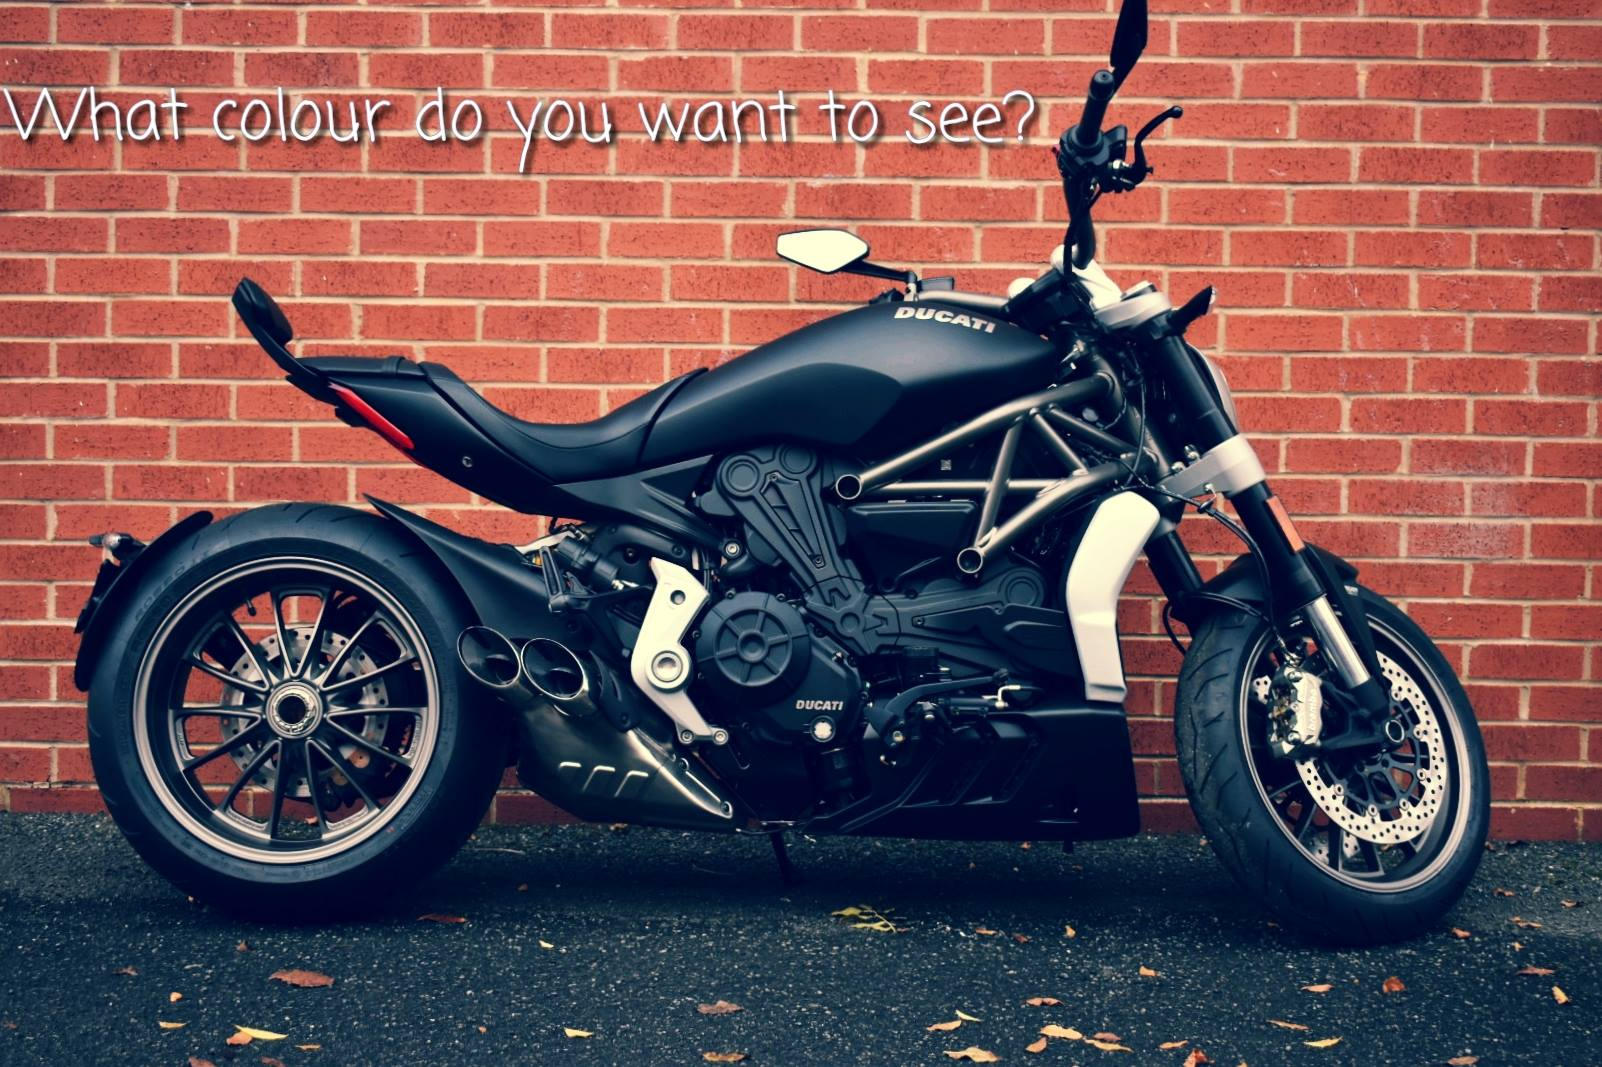 The team at Cambridge fancied a winter project... so we're taking an Xdiavel and giving it a new look. And we want you to decide the colour! comment below or come in have your say! #newlook #xdiavel